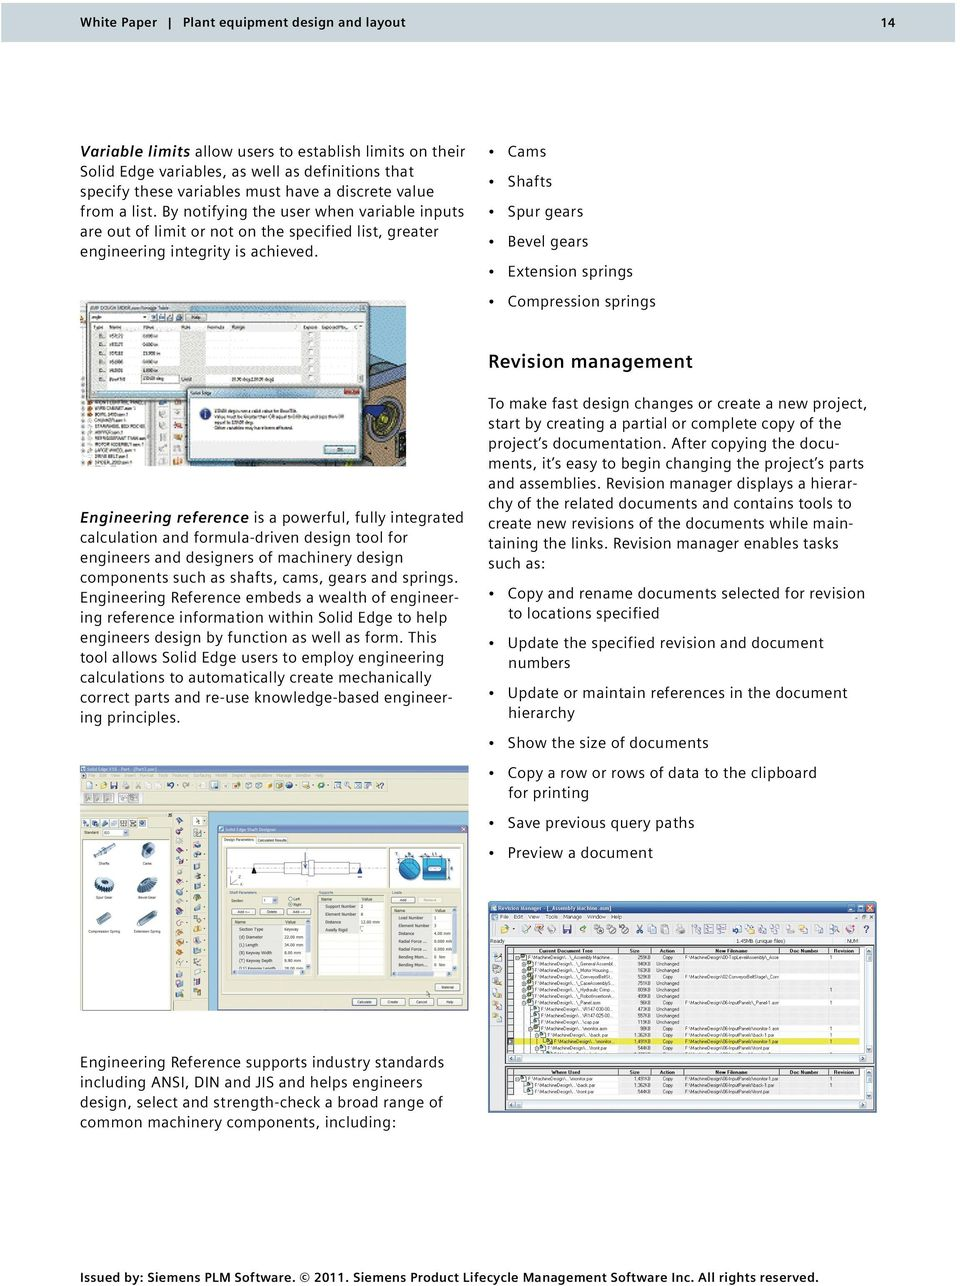 Cams Shafts Spur gears Bevel gears Extension springs Compression springs Revision management Engineering reference is a powerful, fully integrated calculation and formula-driven design tool for